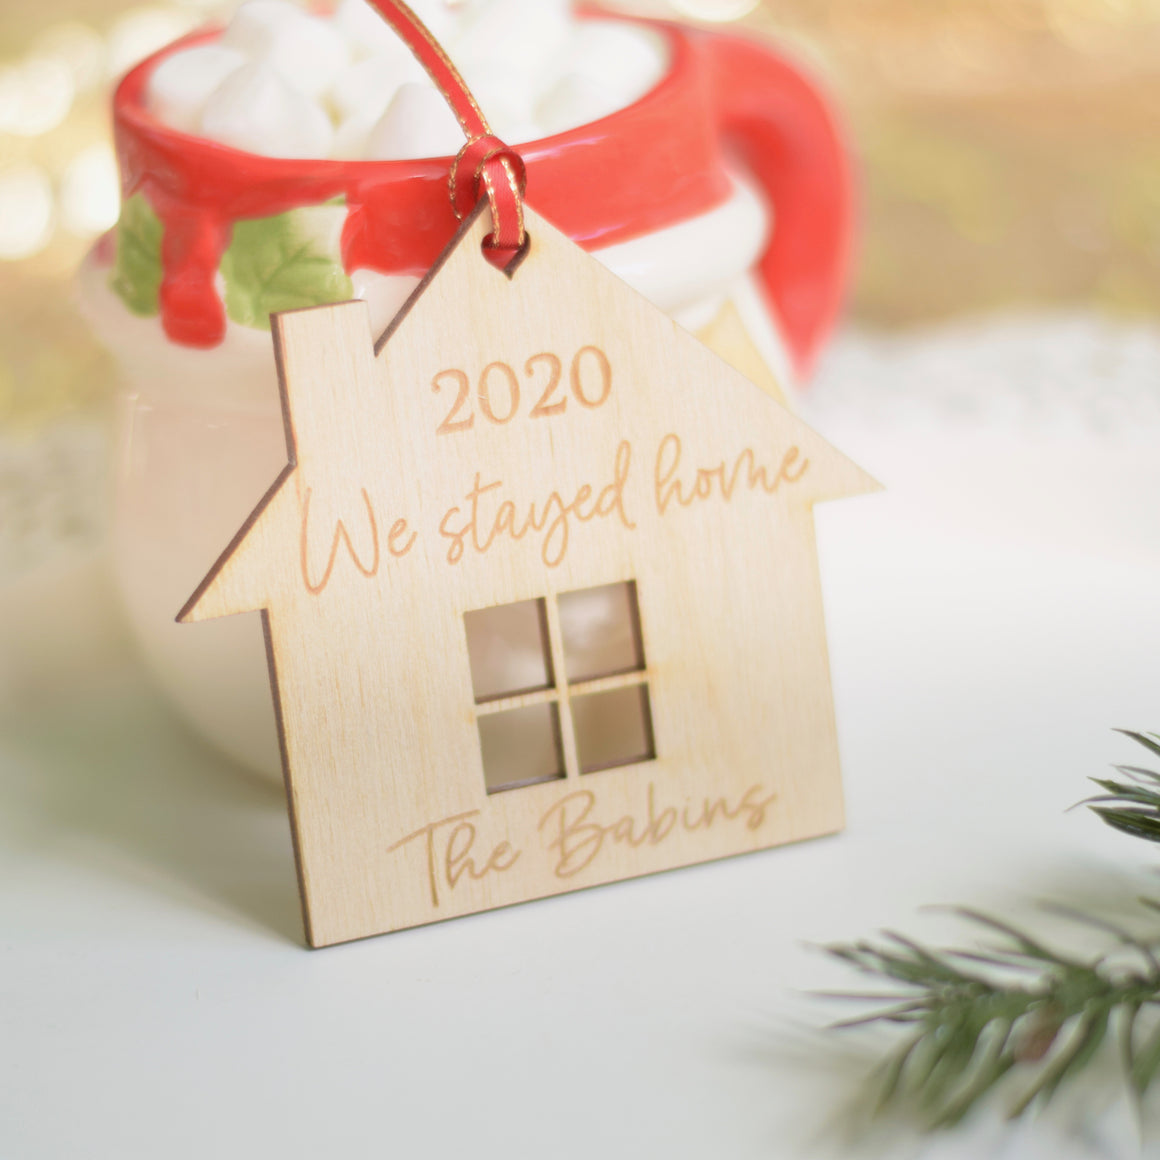 2020 We Stayed Home Personalized Christmas Ornament